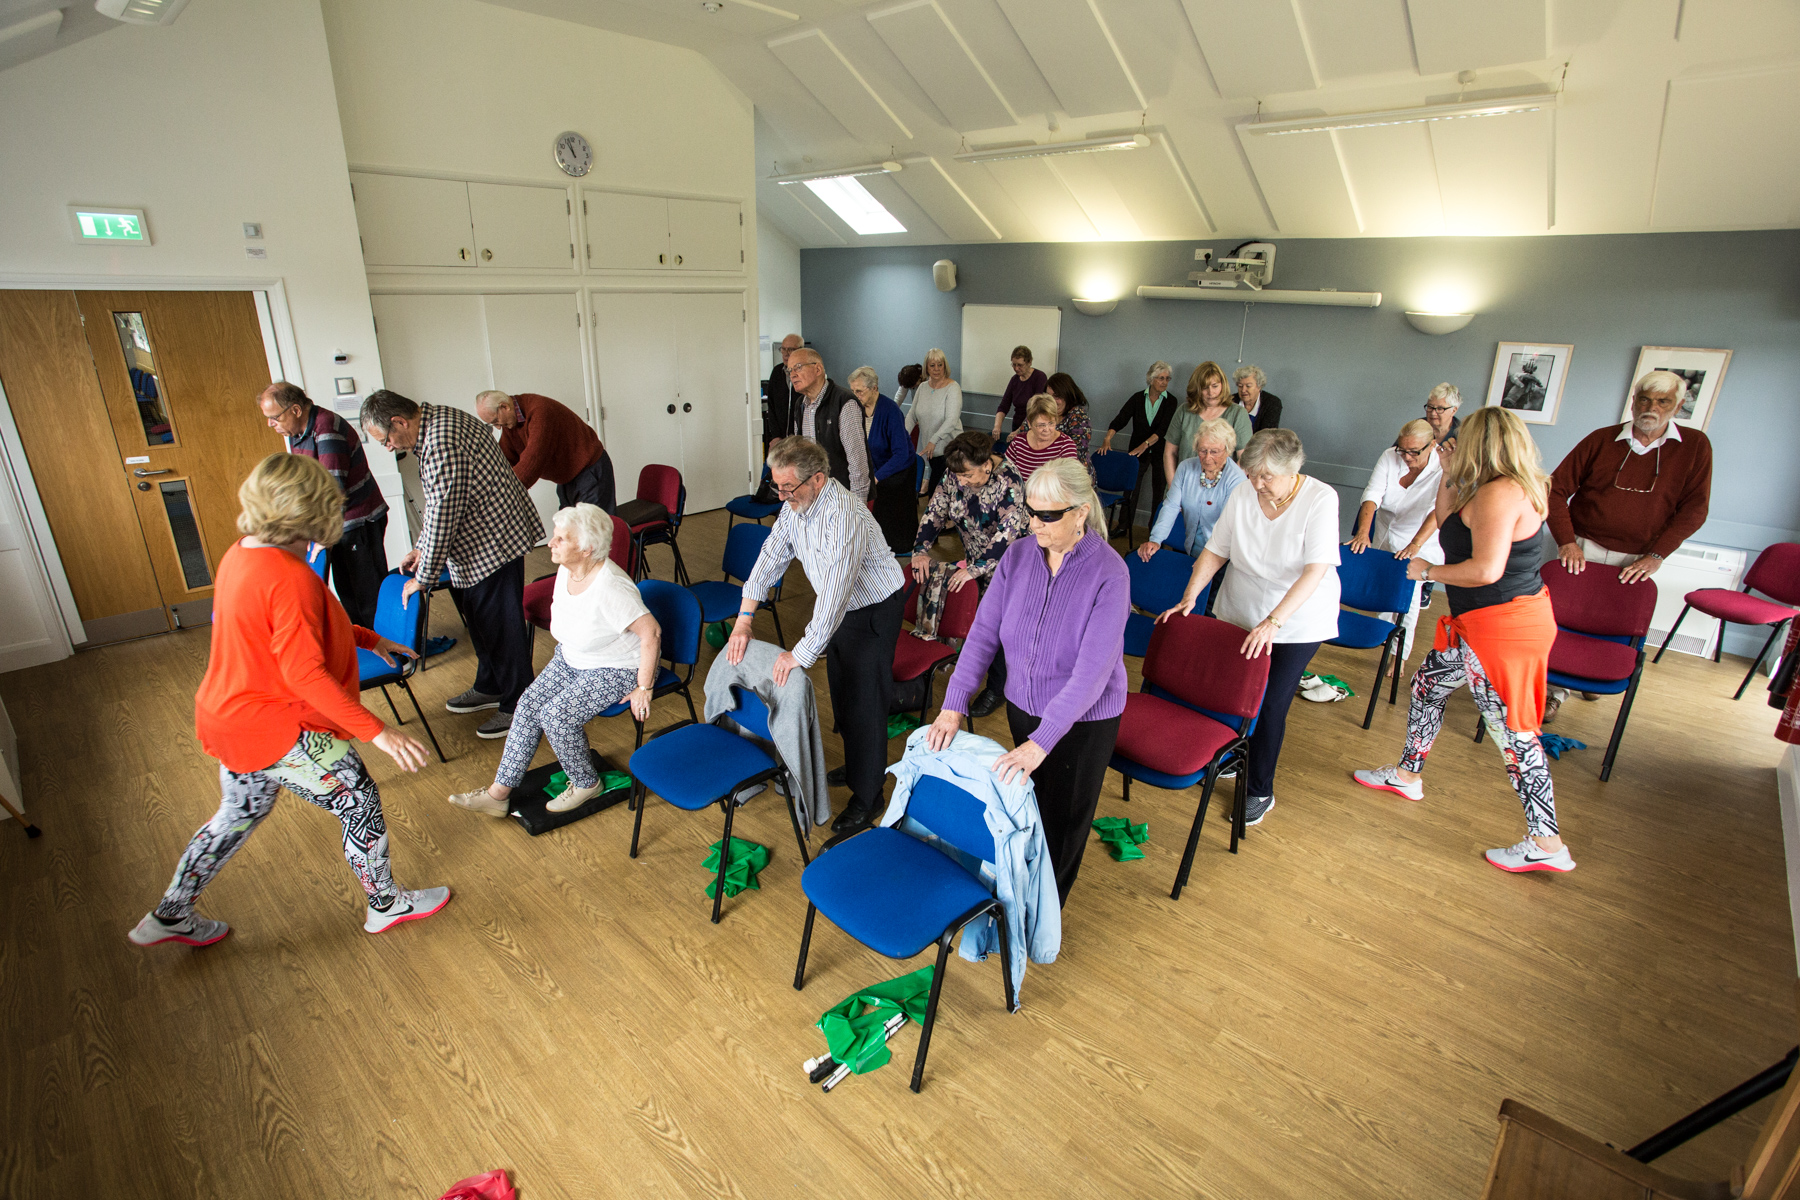 Exercise class with eldery clients smiling and standing in a classroom